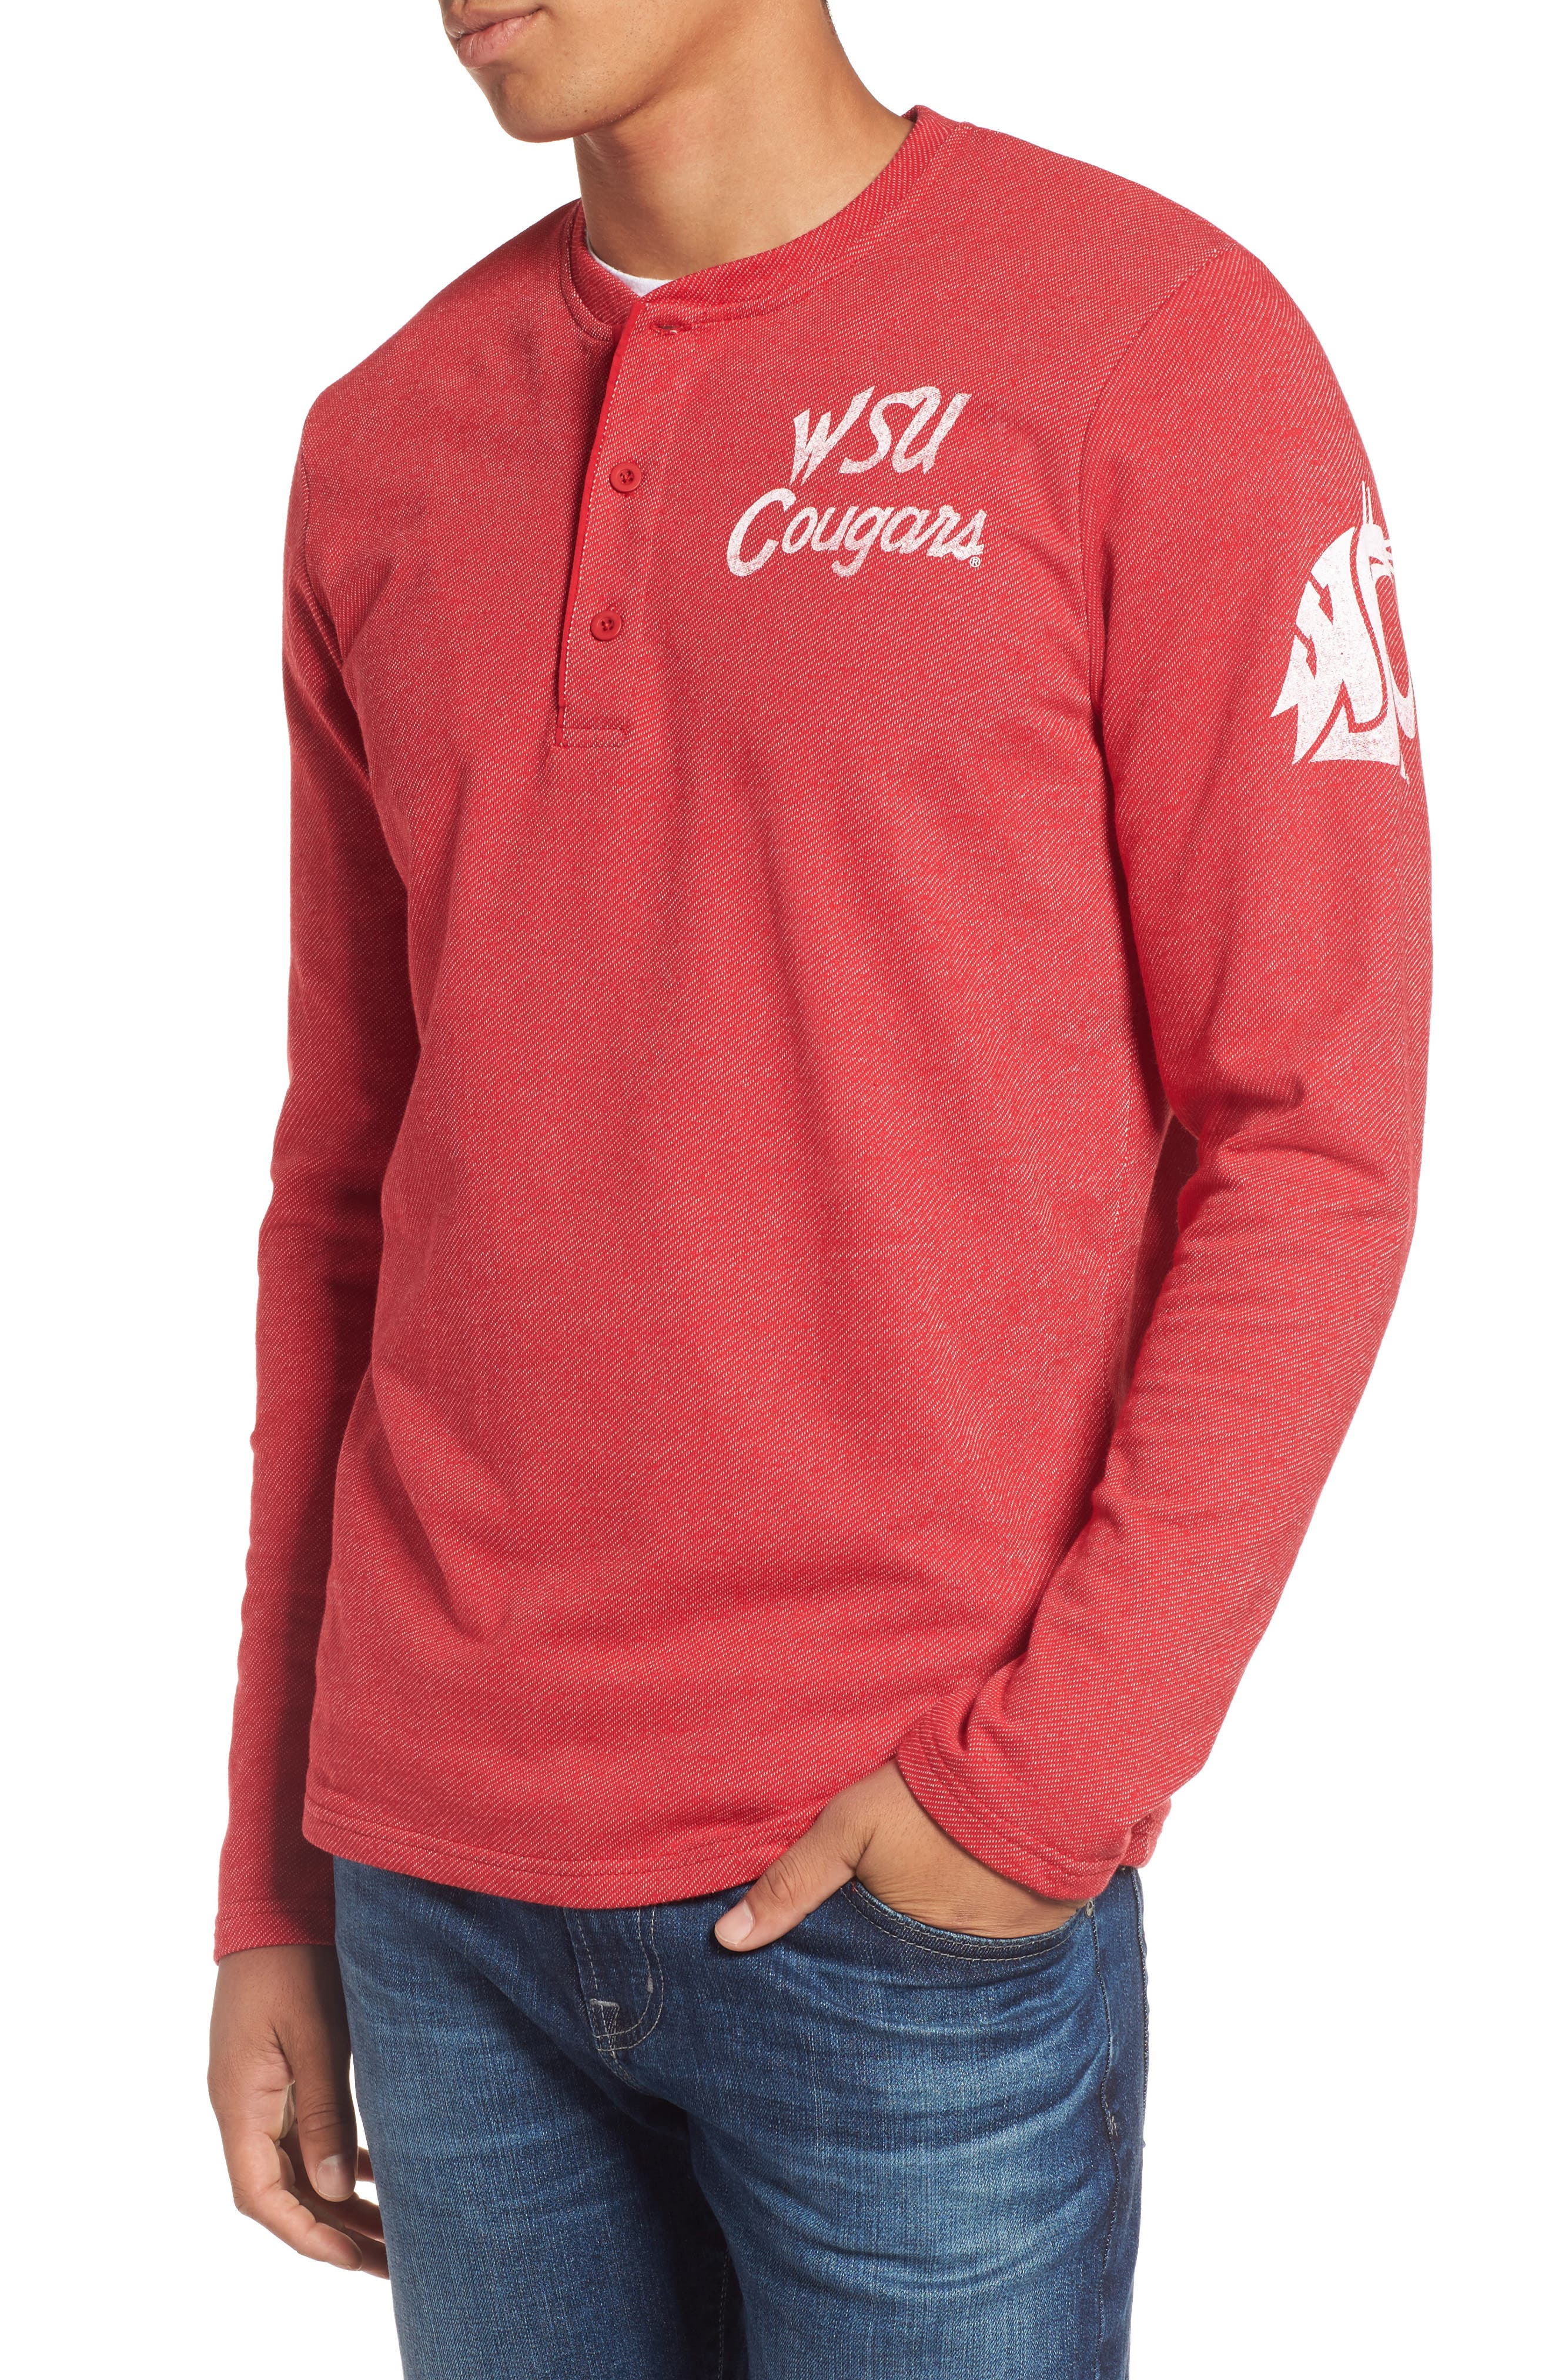 Alternate Image 1 Selected - '47 Washington State University Cougars Henley